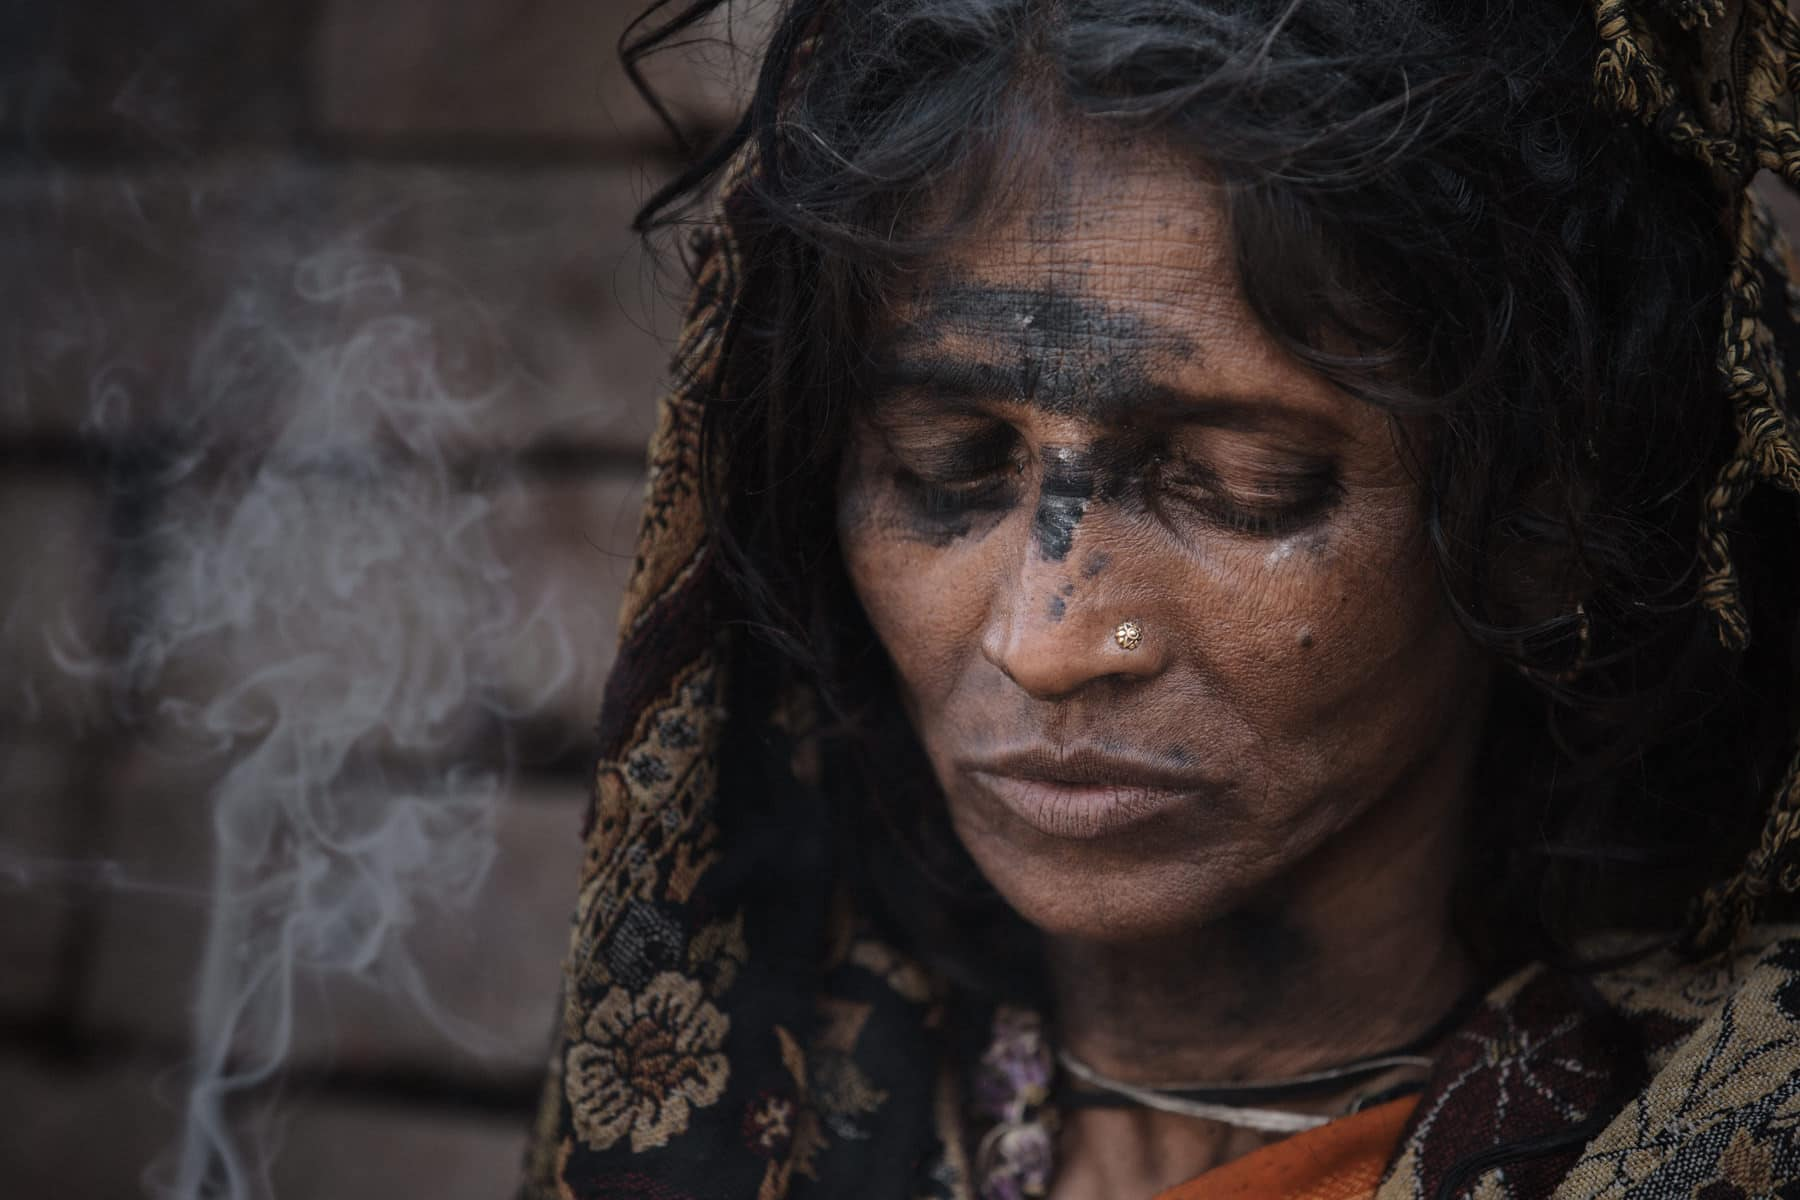 India, Varanasi, Street Photography, Mystical Woman